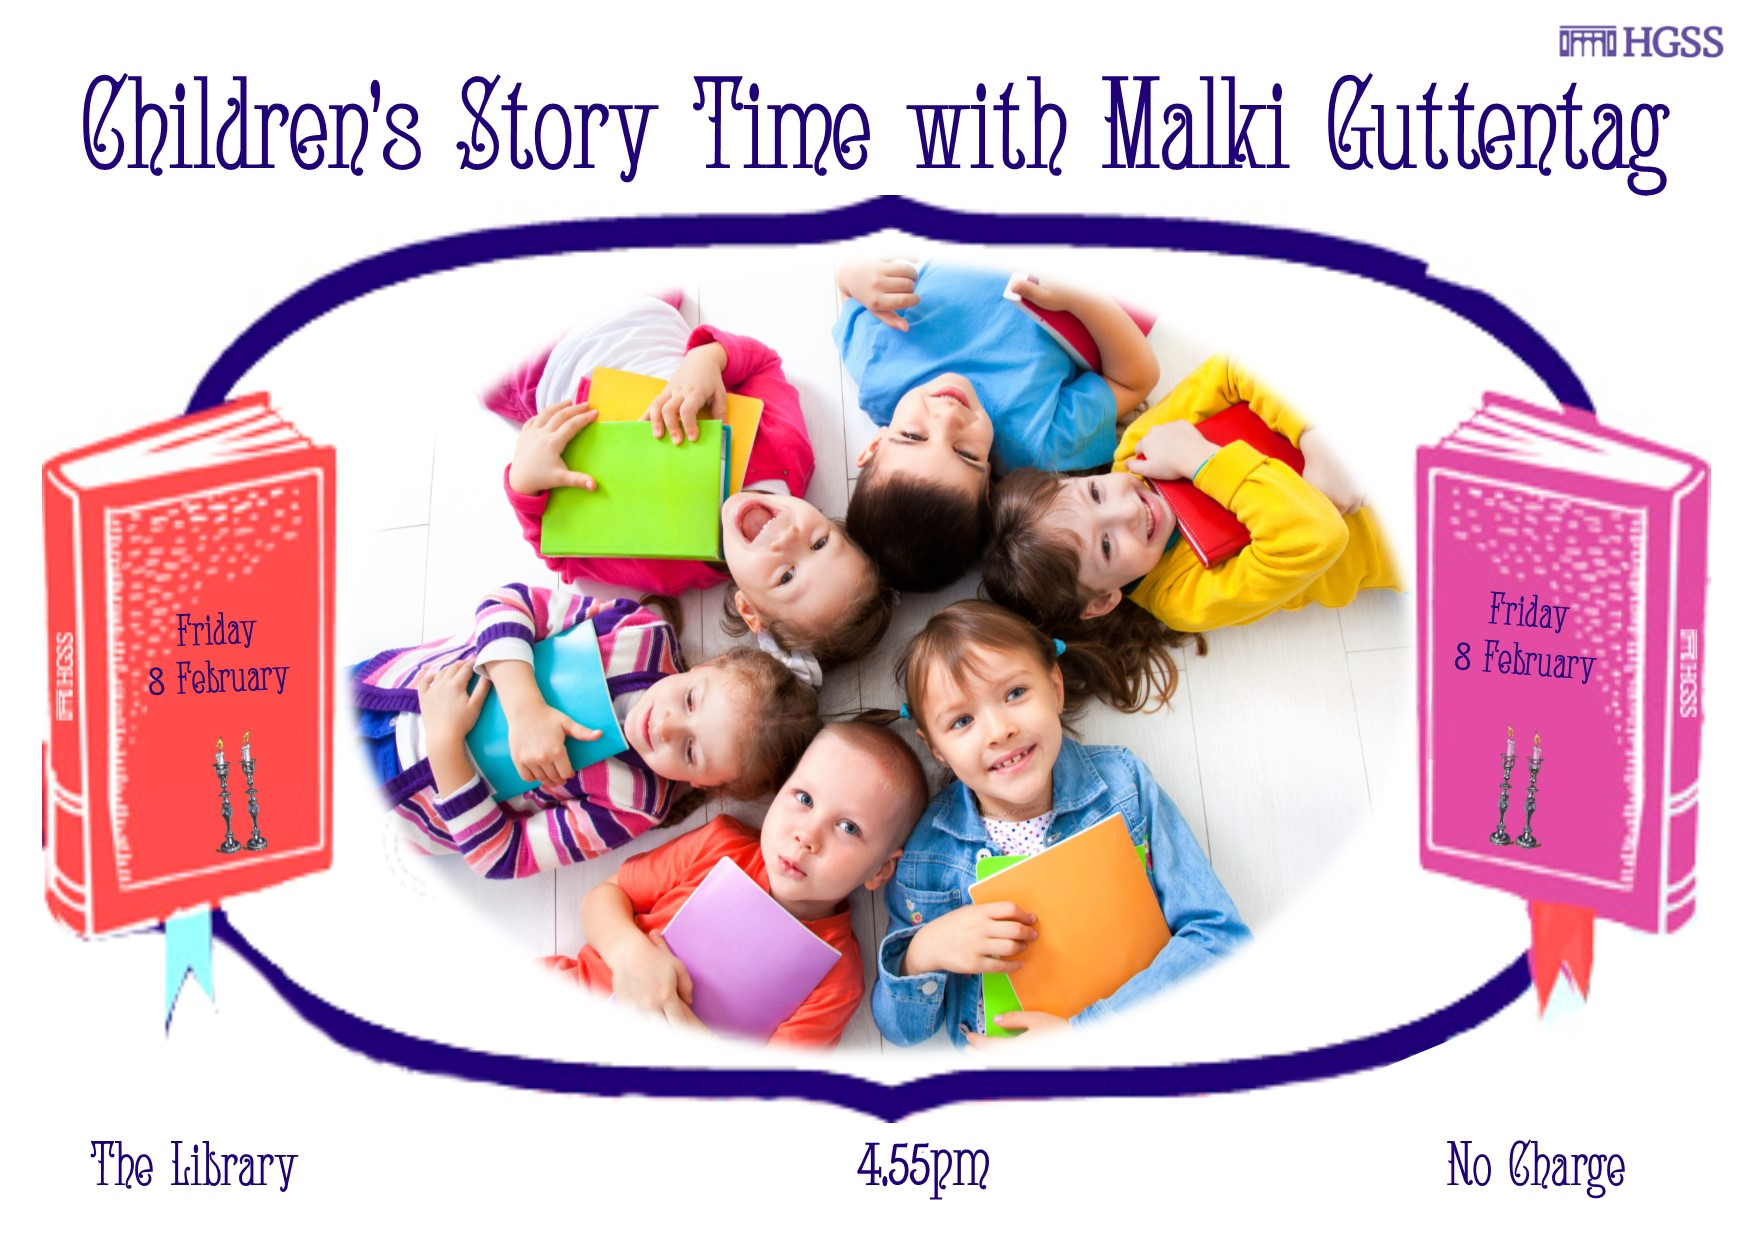 Children's Story Time @ The Library, HGSS